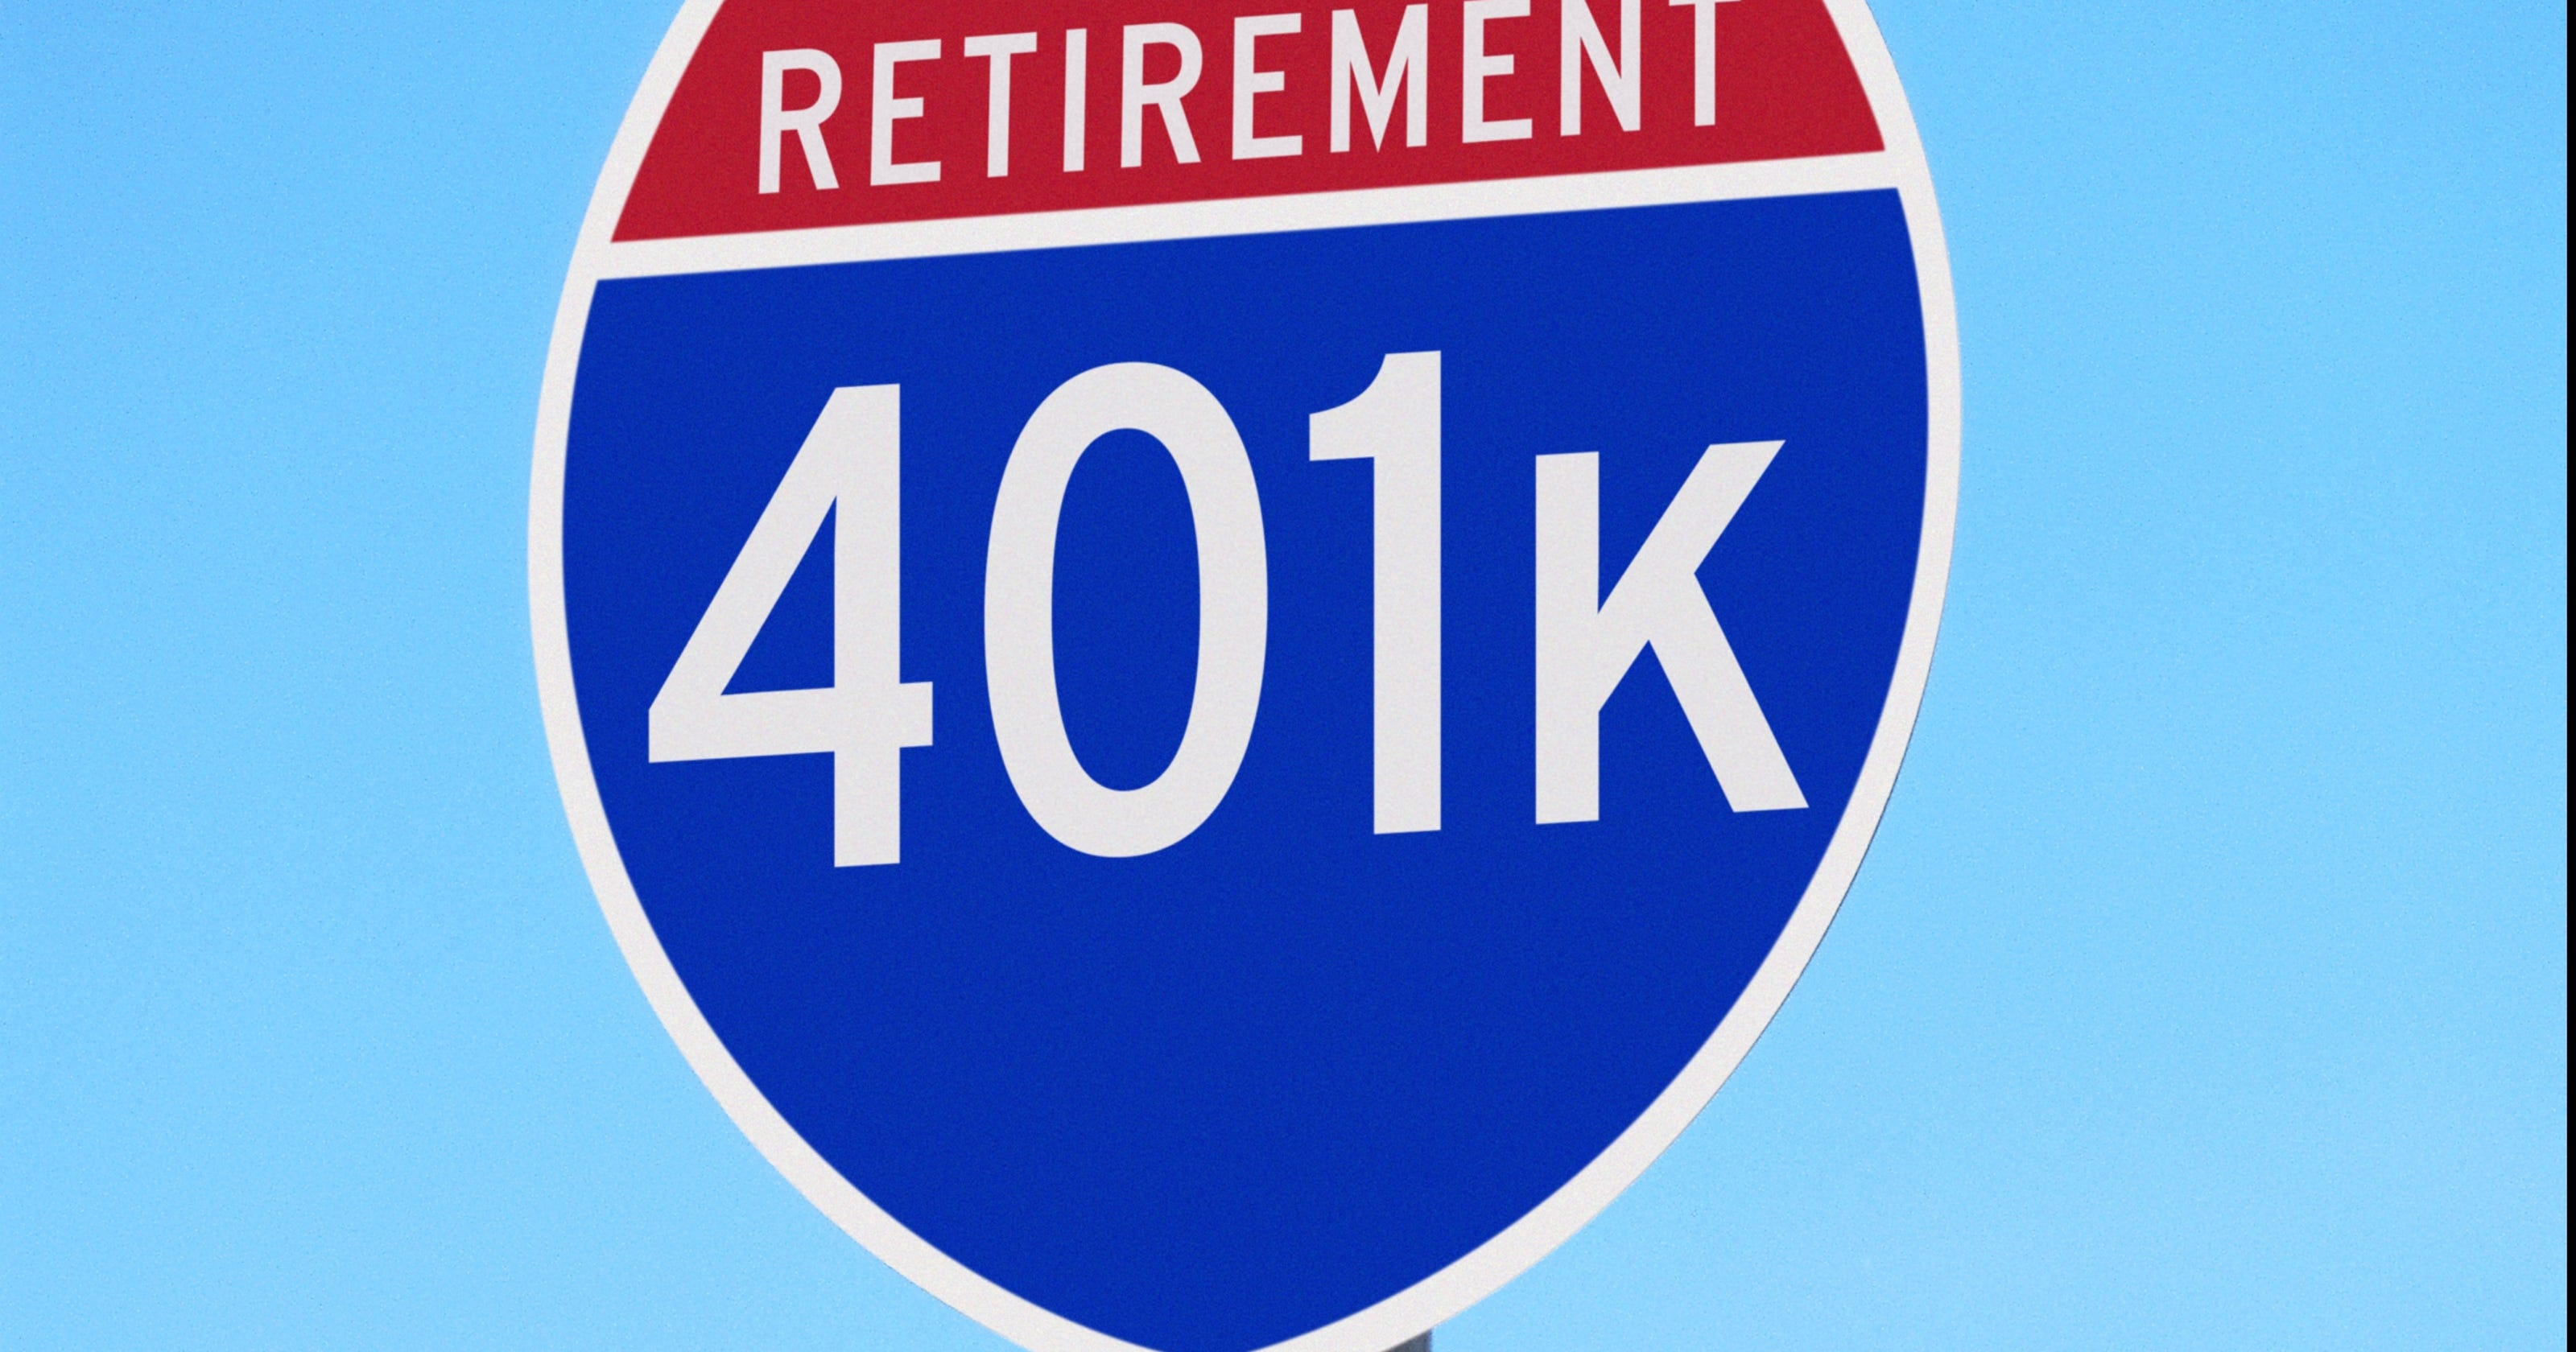 report 401 k rollover process too confusing